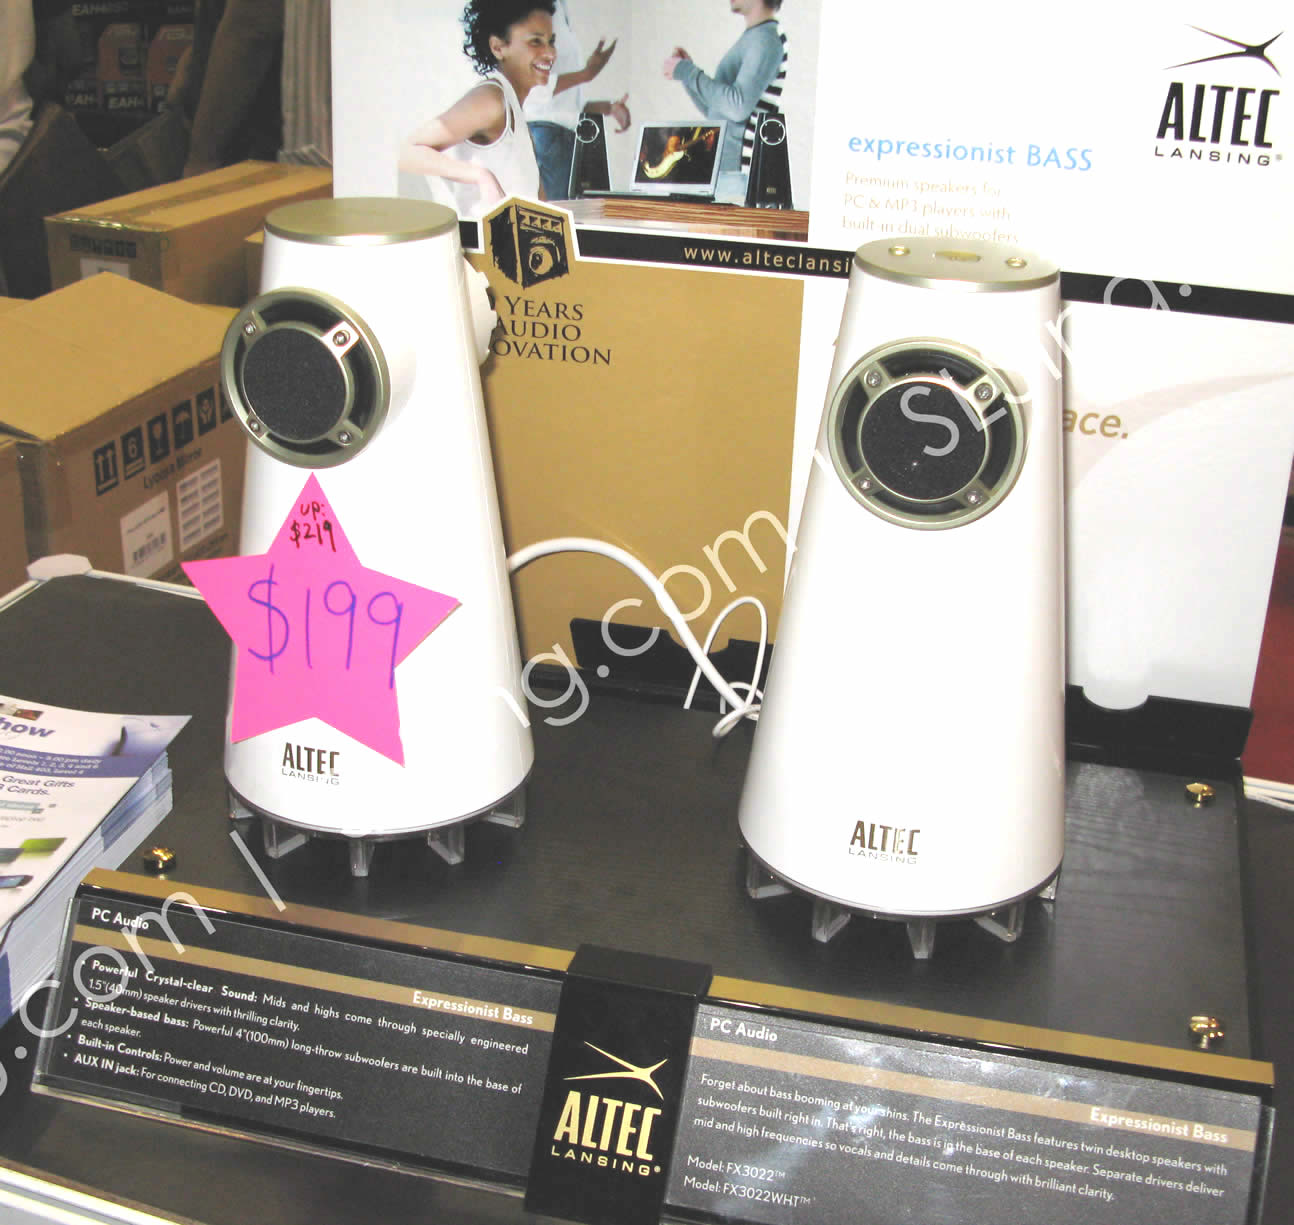 Altec Lansing (vr-zone Booest) IT SHOW 2009 Price List Brochure